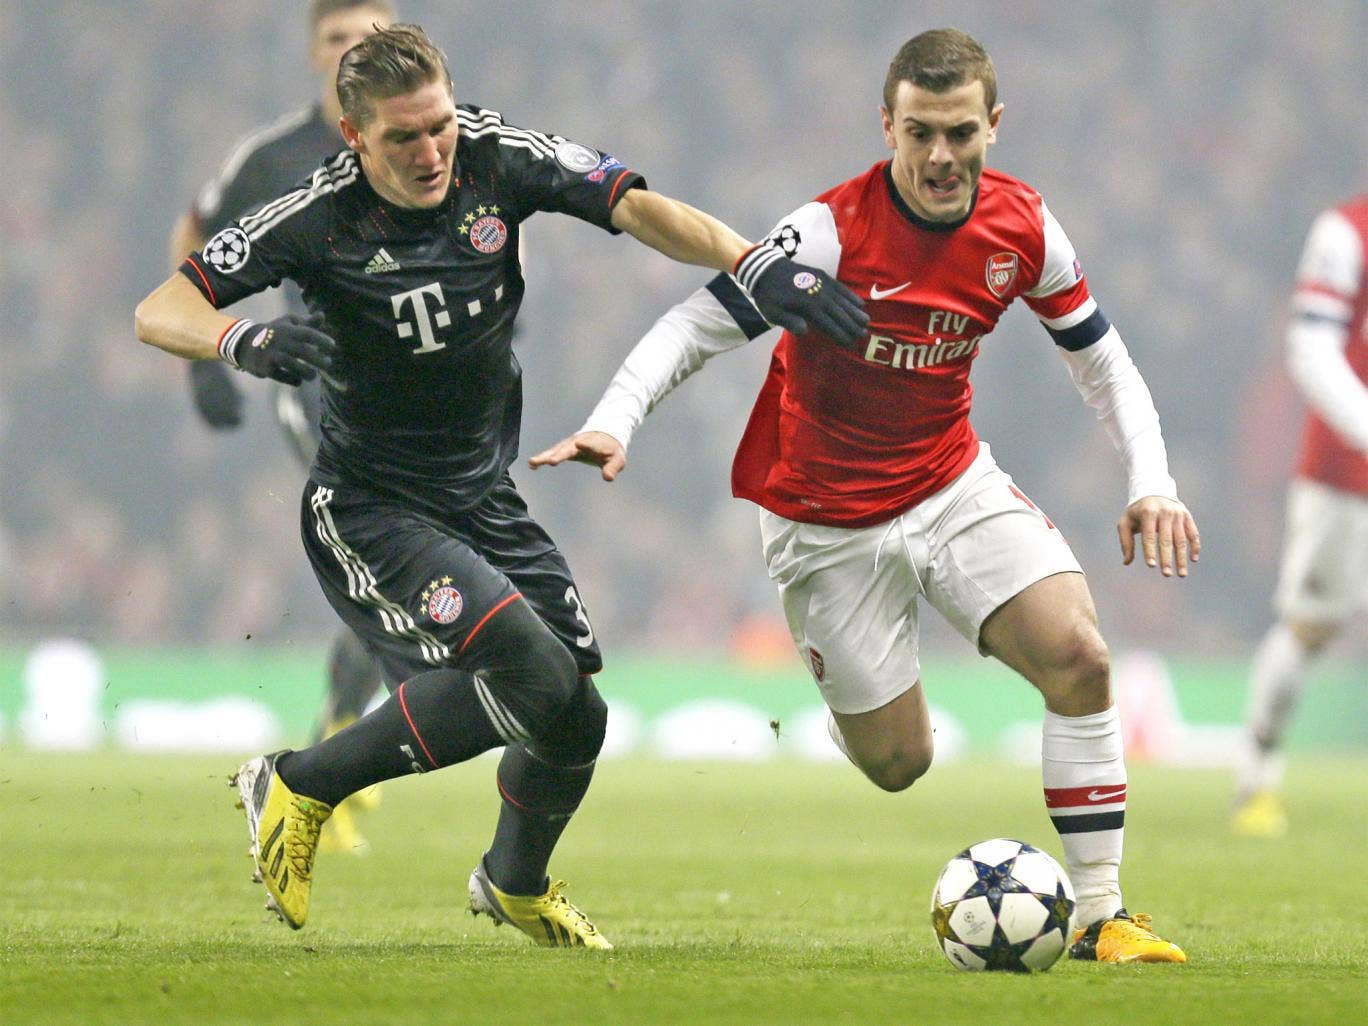 Bastian Schweinsteiger tussles with Jack Wilshere at the Emirates